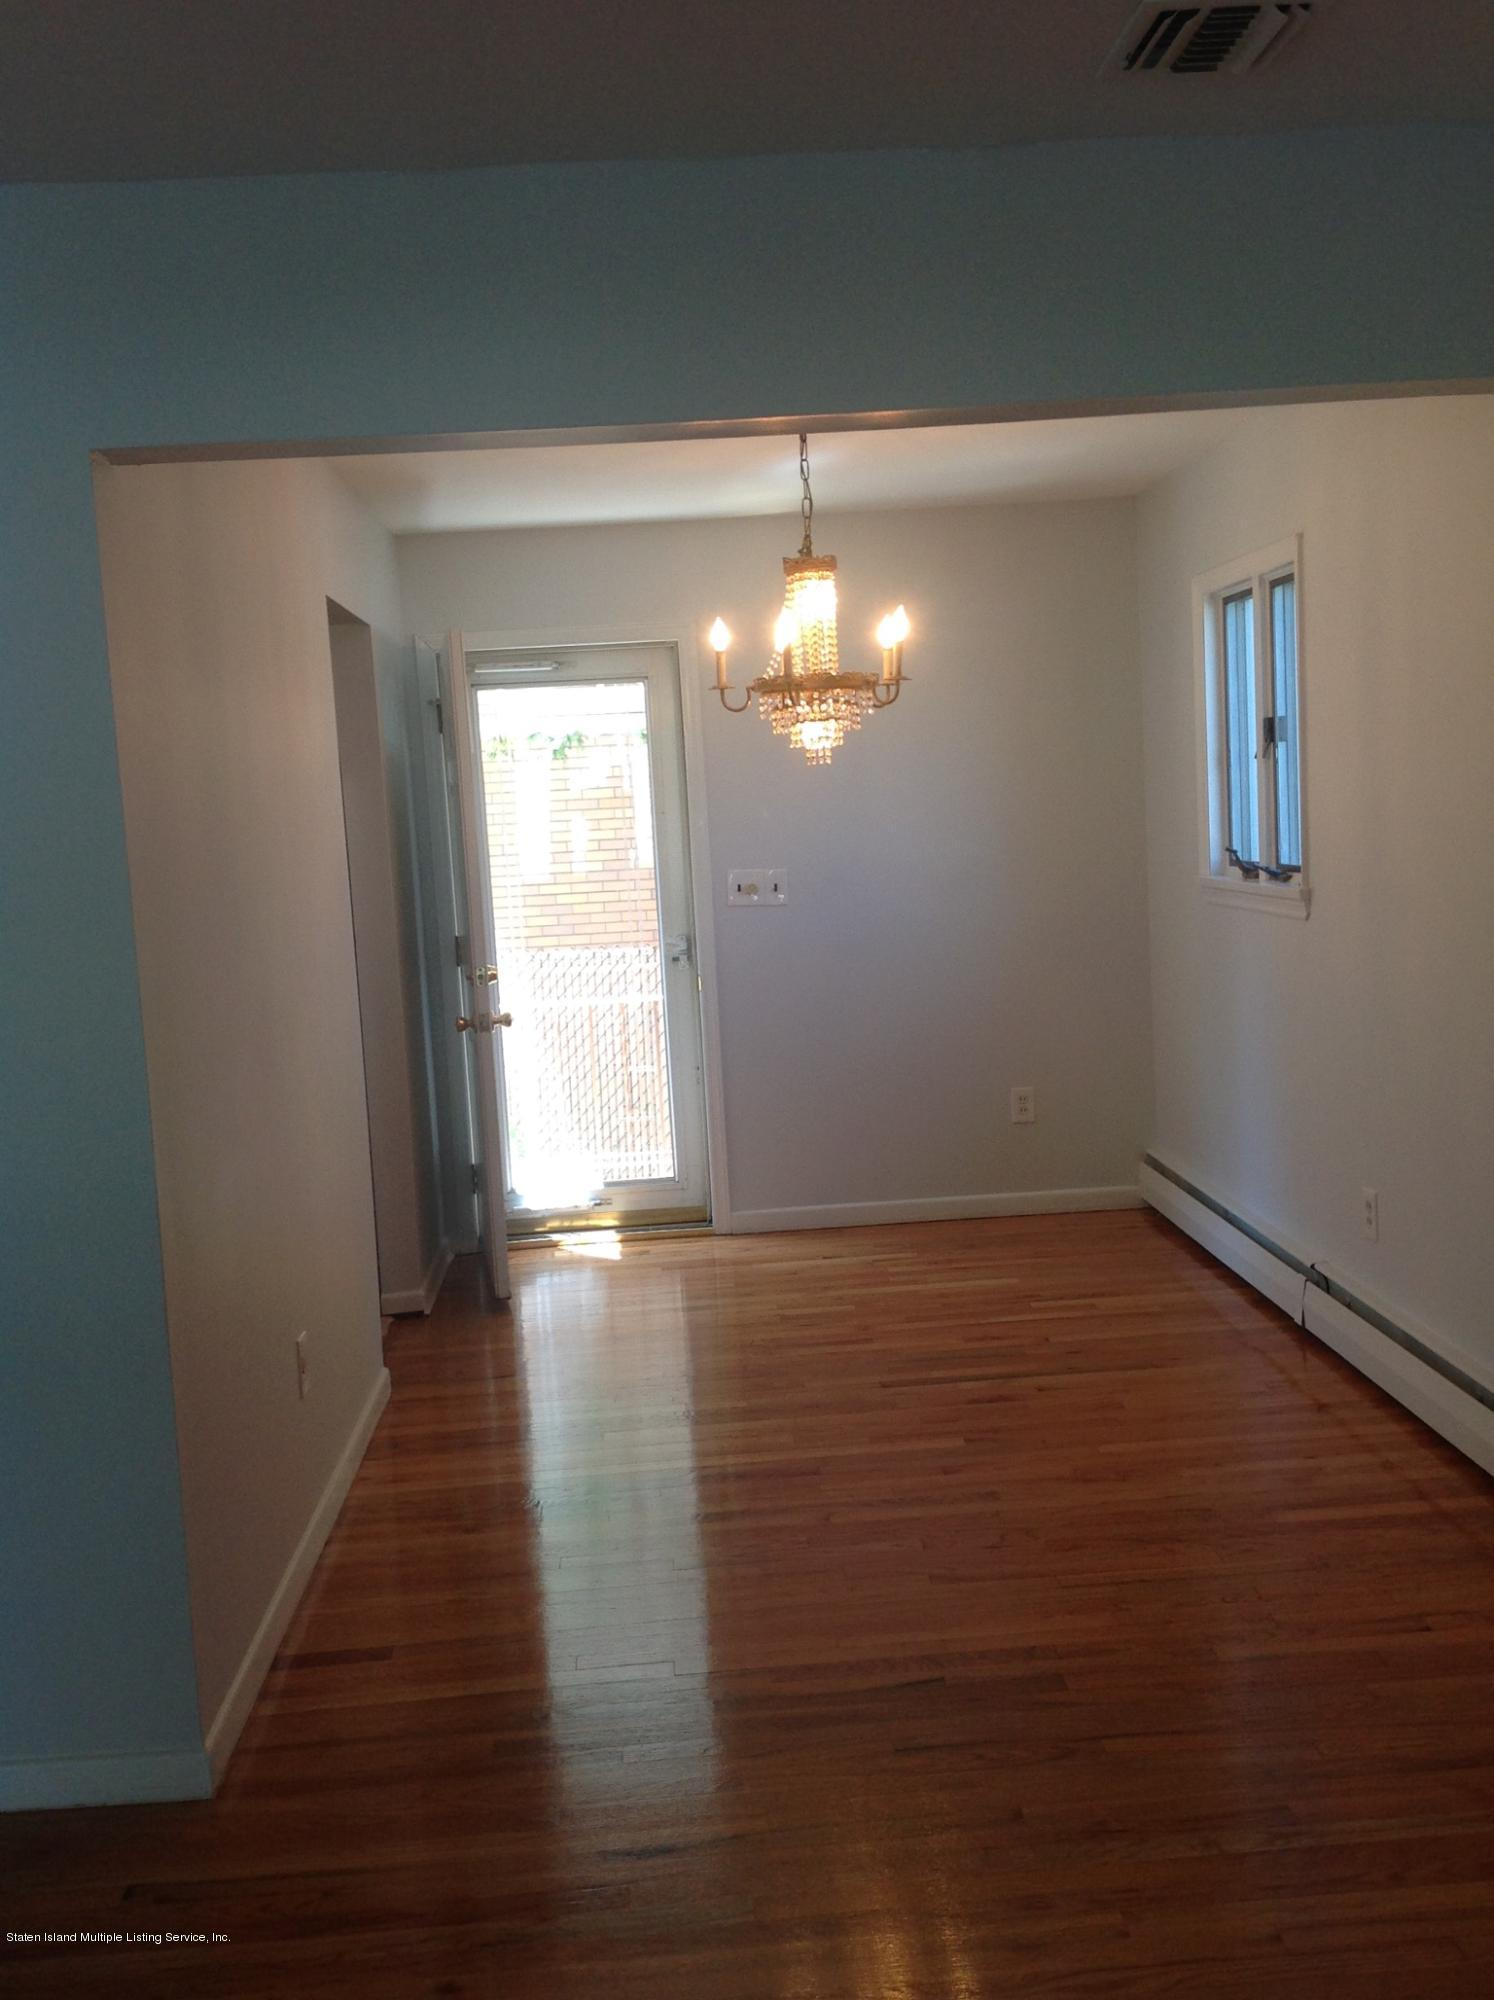 Single Family - Detached 28 Queen Street  Staten Island, NY 10314, MLS-1148779-9